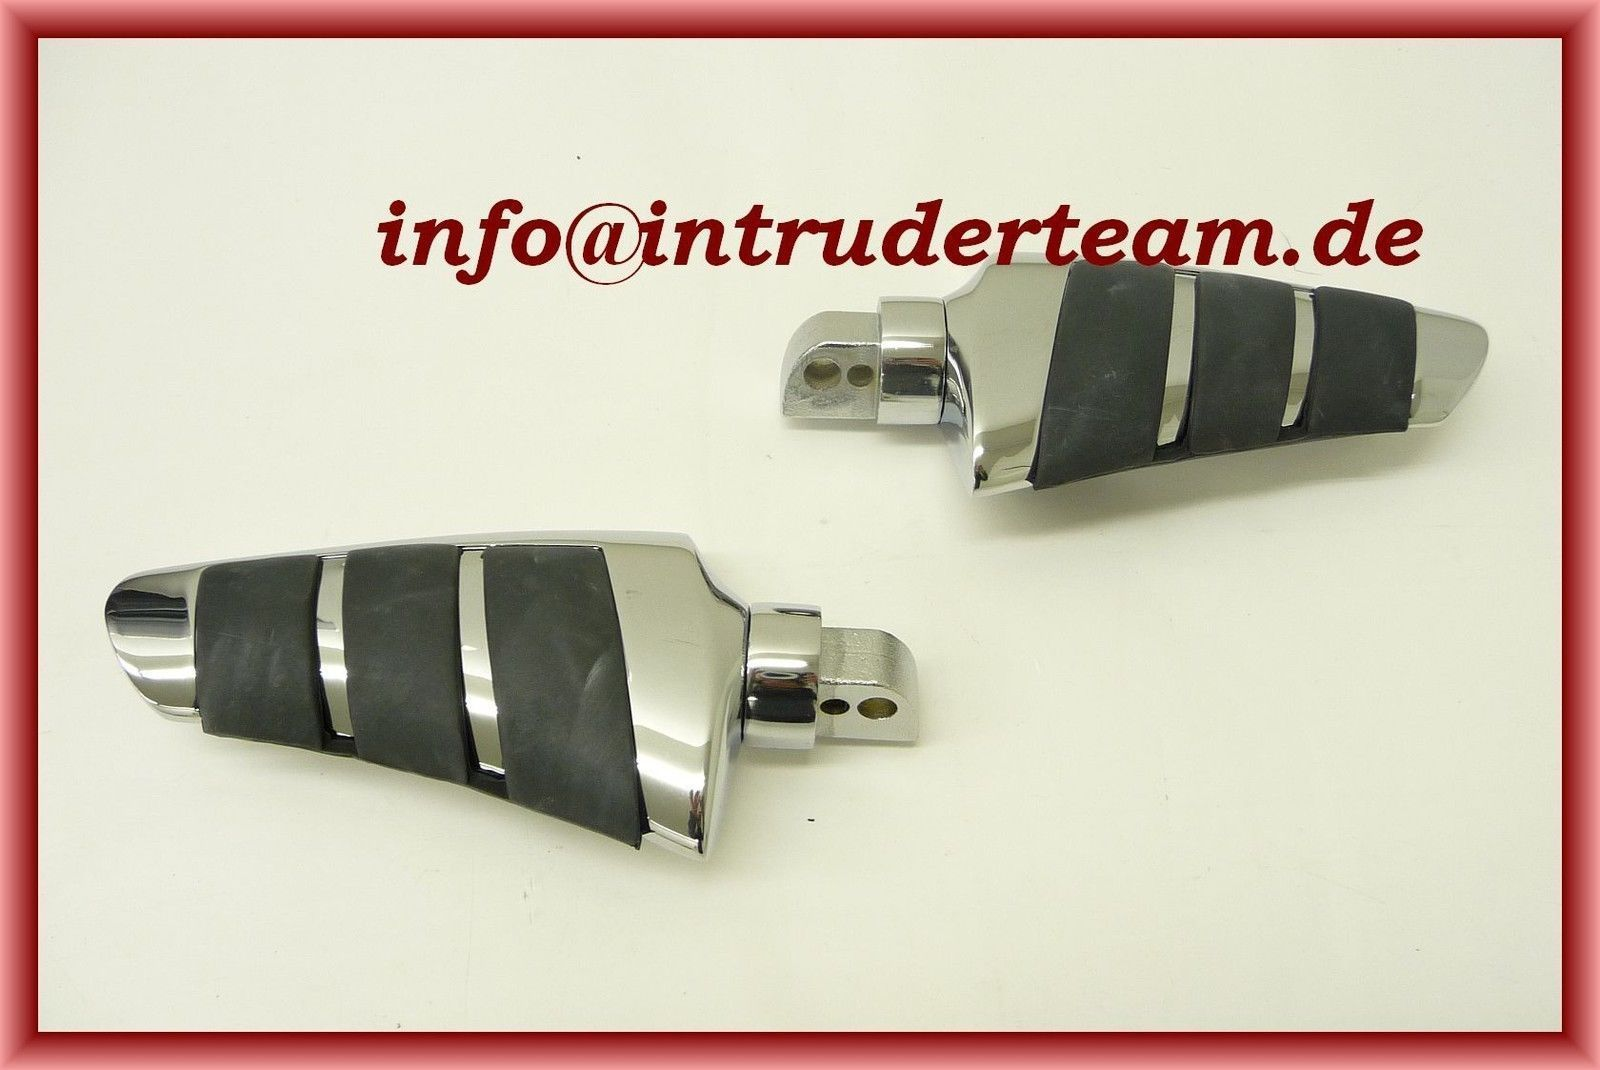 Fußrasten Footpegs Sozius Smooth Honda VT125, VT600C '99-UP, VLX '99-UP, VT750, VT1300CX / Fury